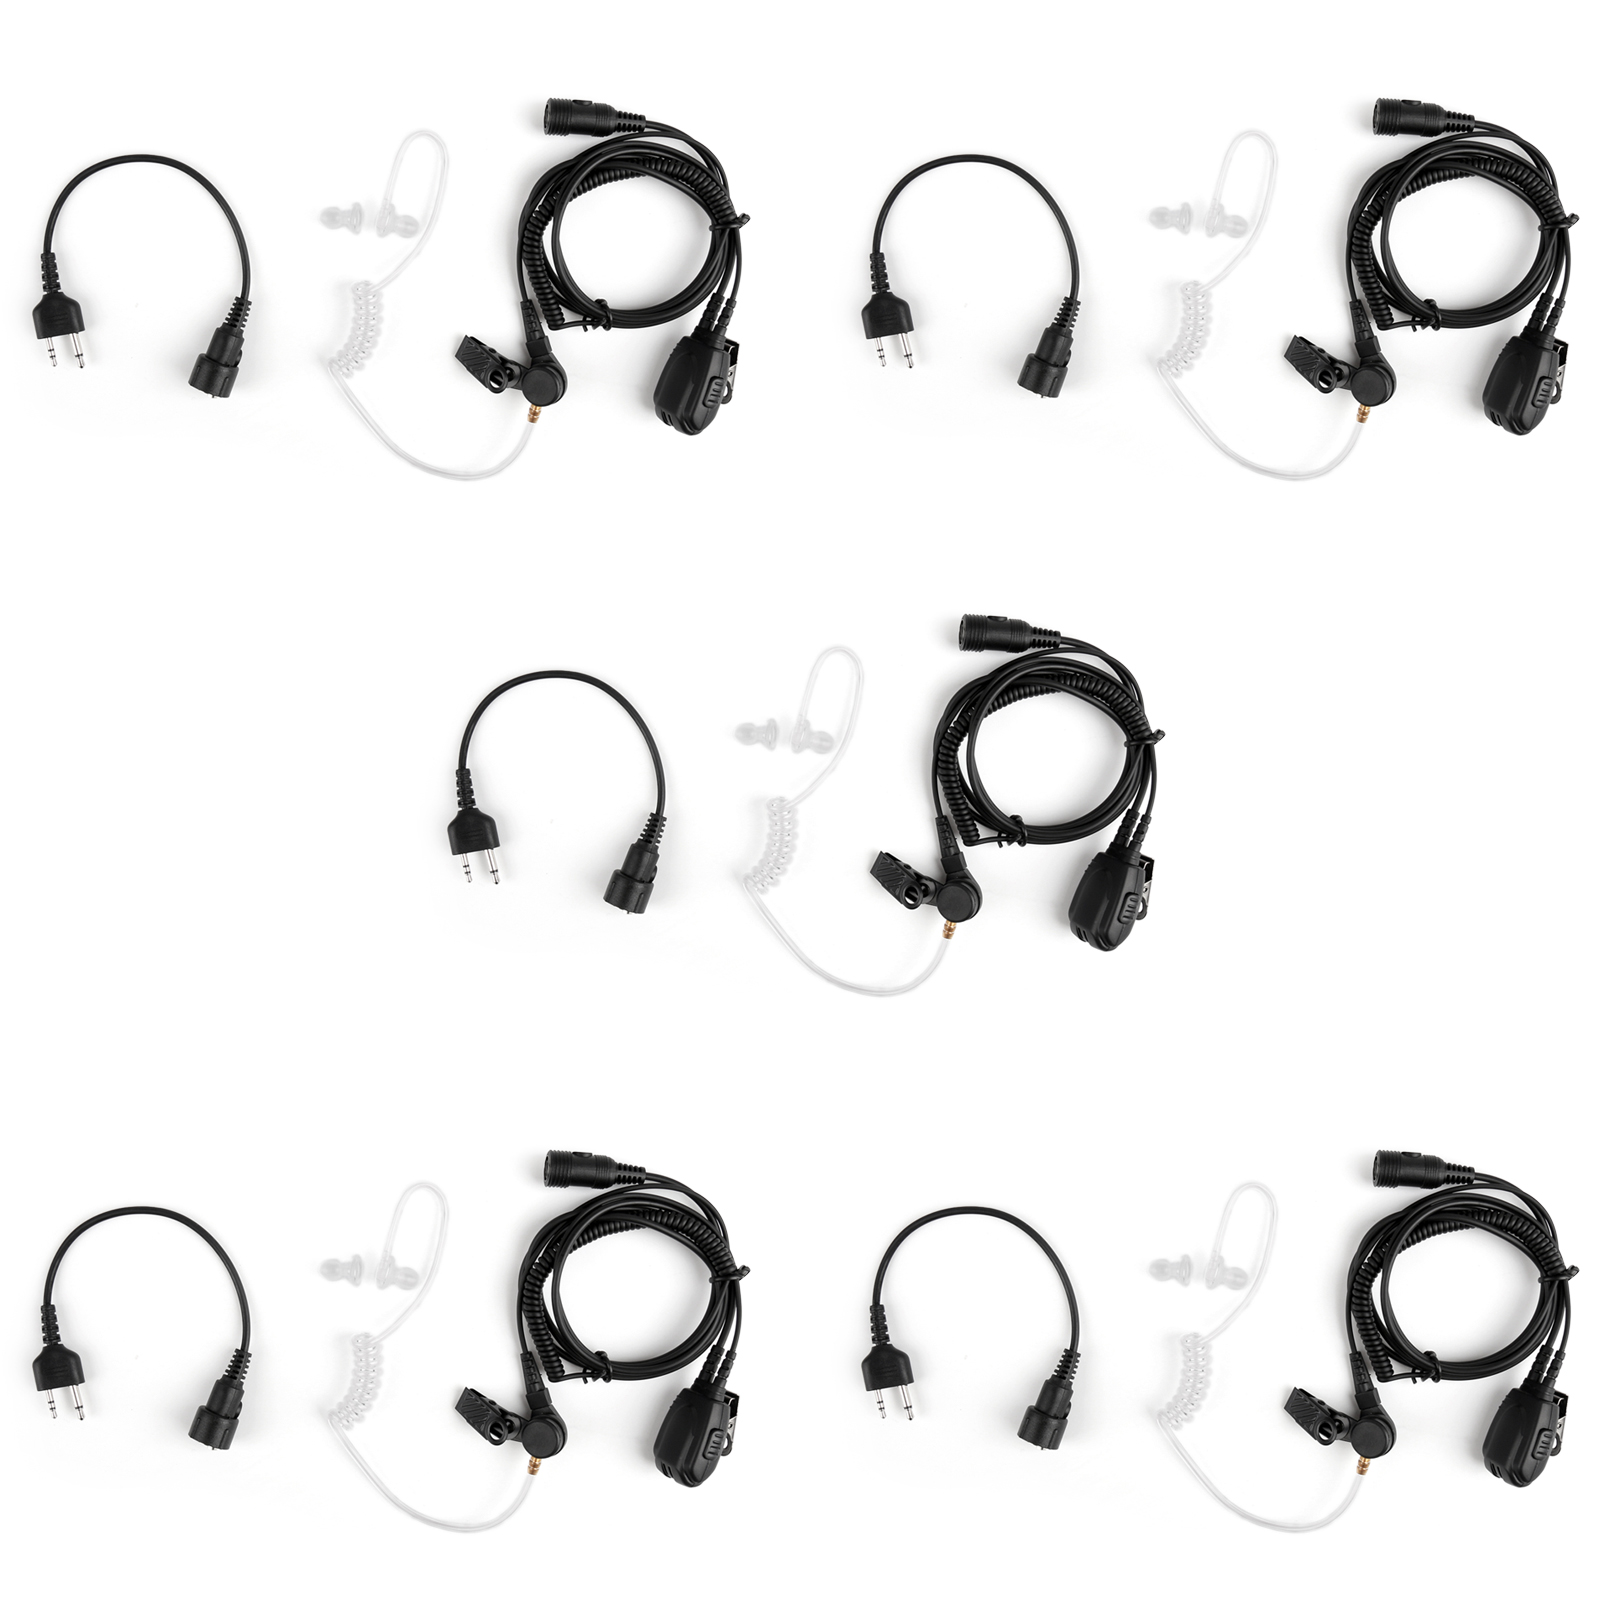 5pcs Covert Acoustic Air Tube Headset For Midland Lxt210